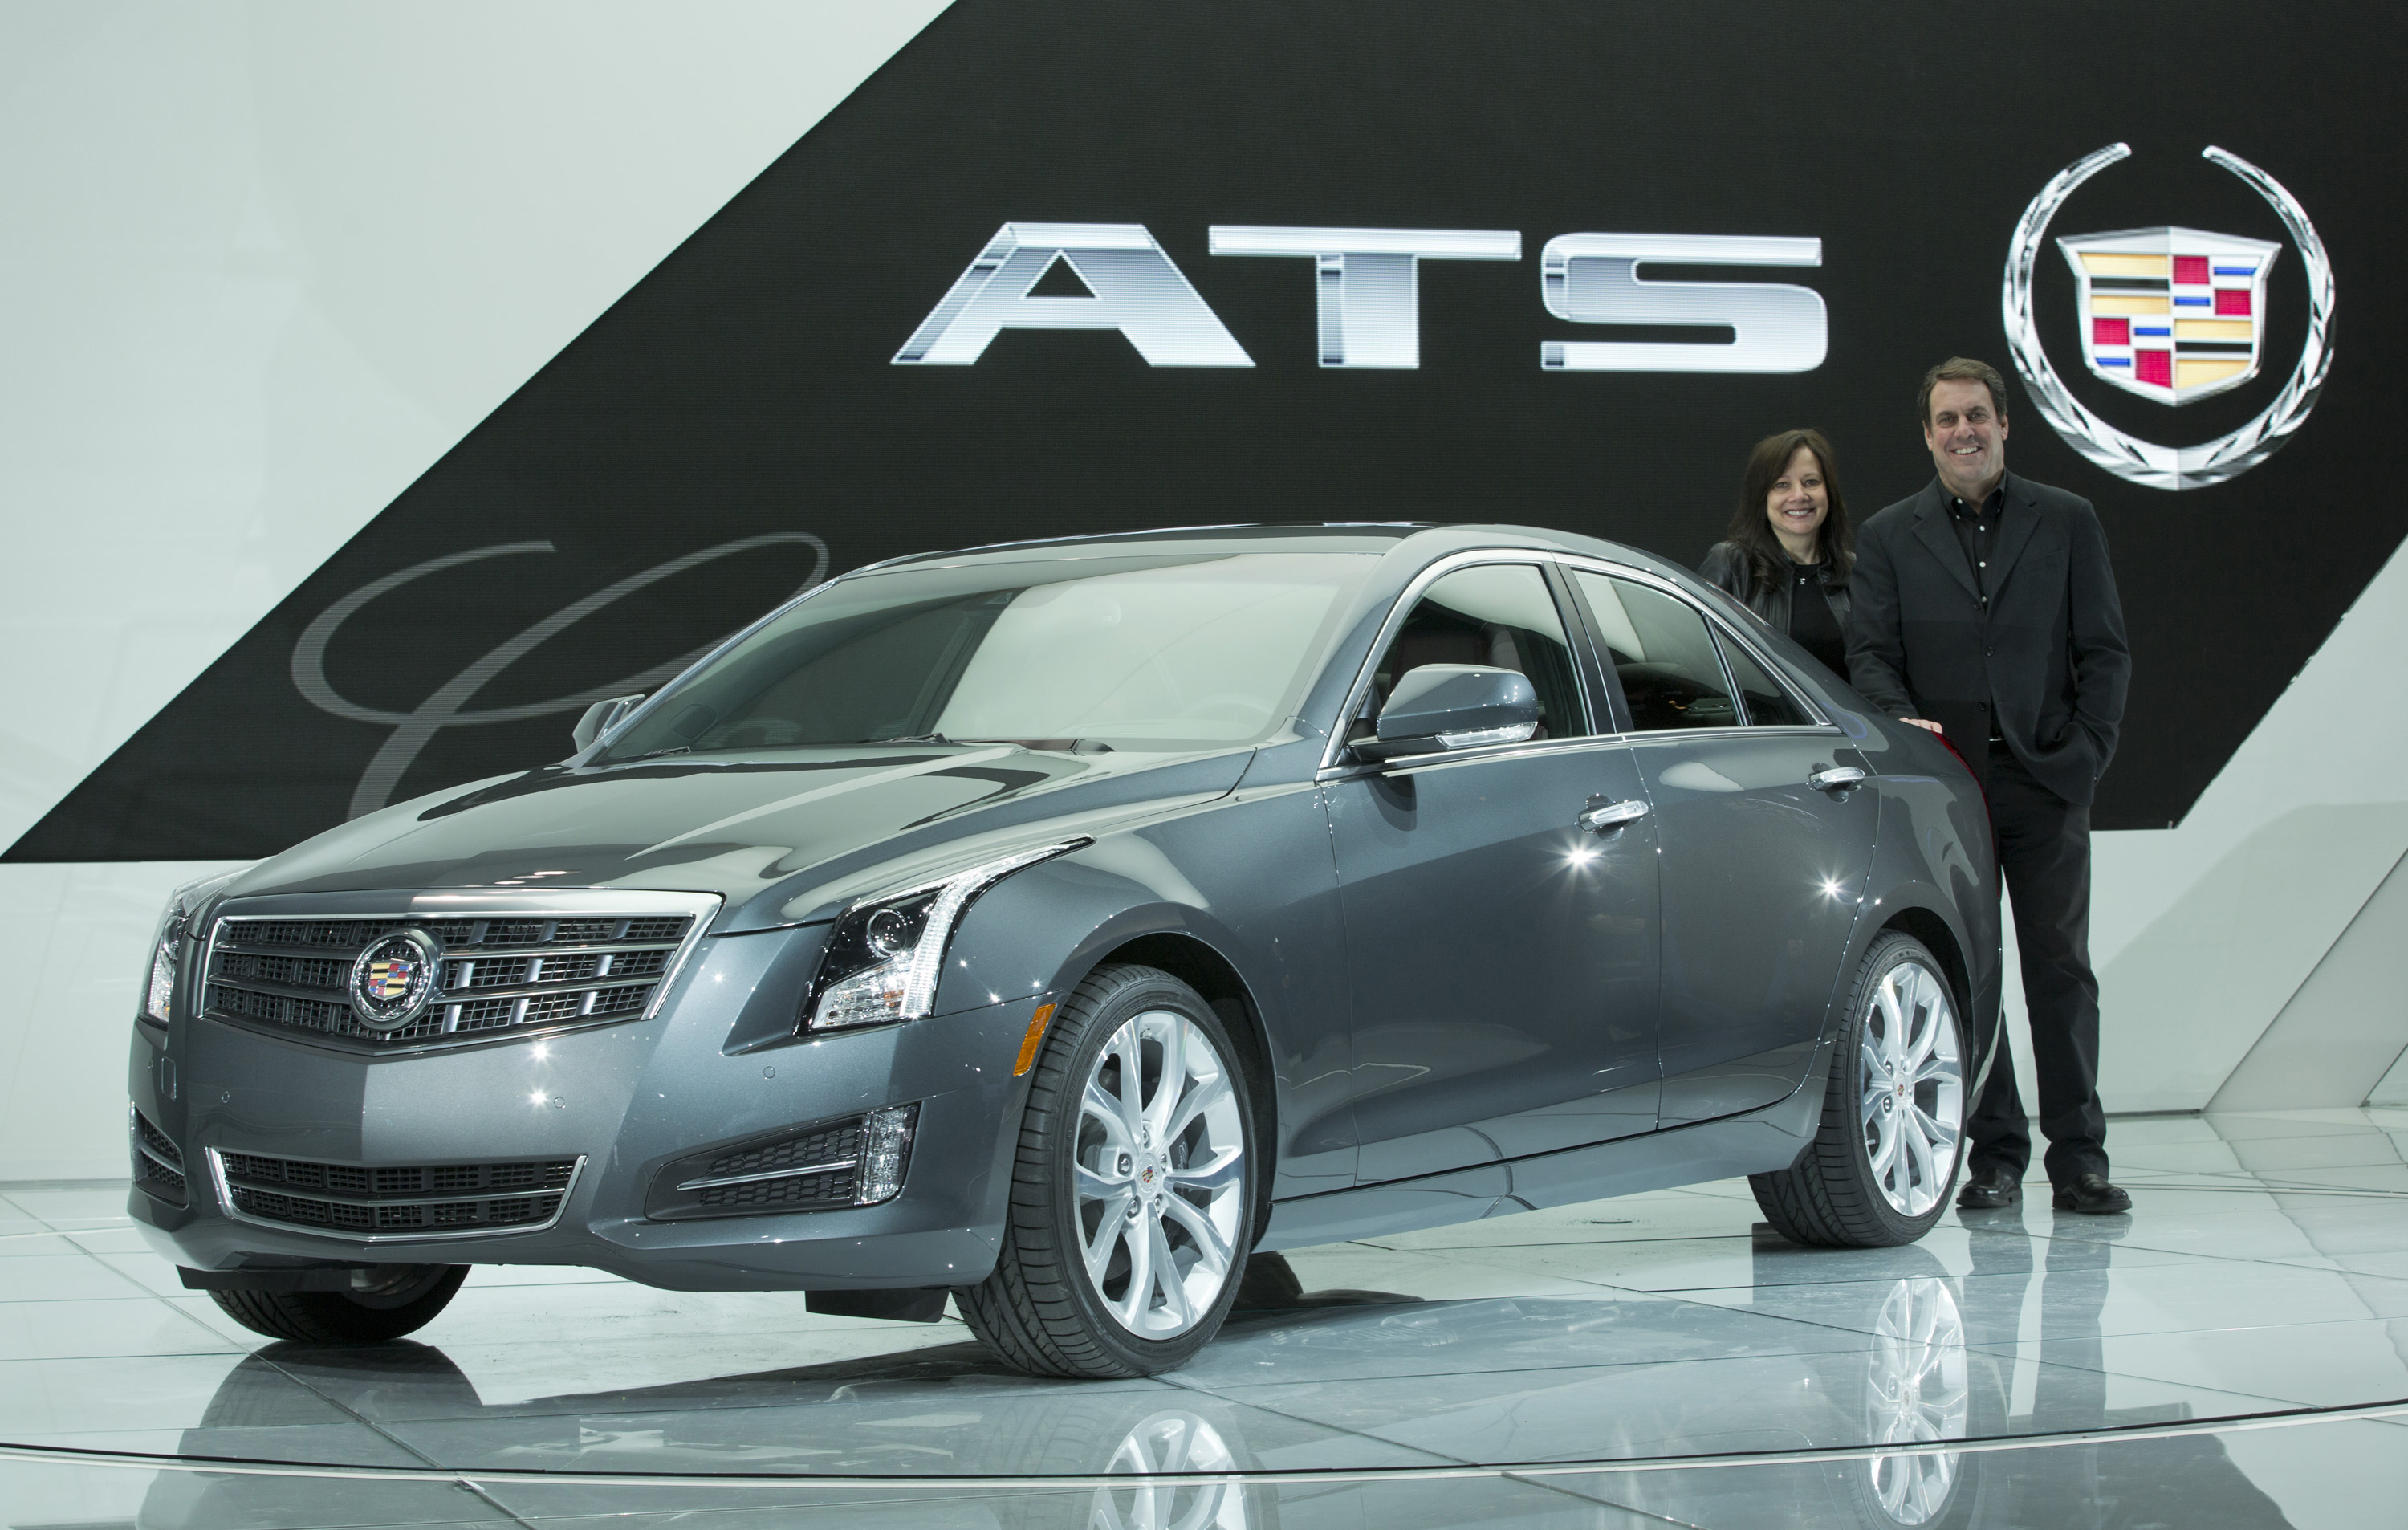 awd courtesy alex cadillac review of l picture interior ats dykes